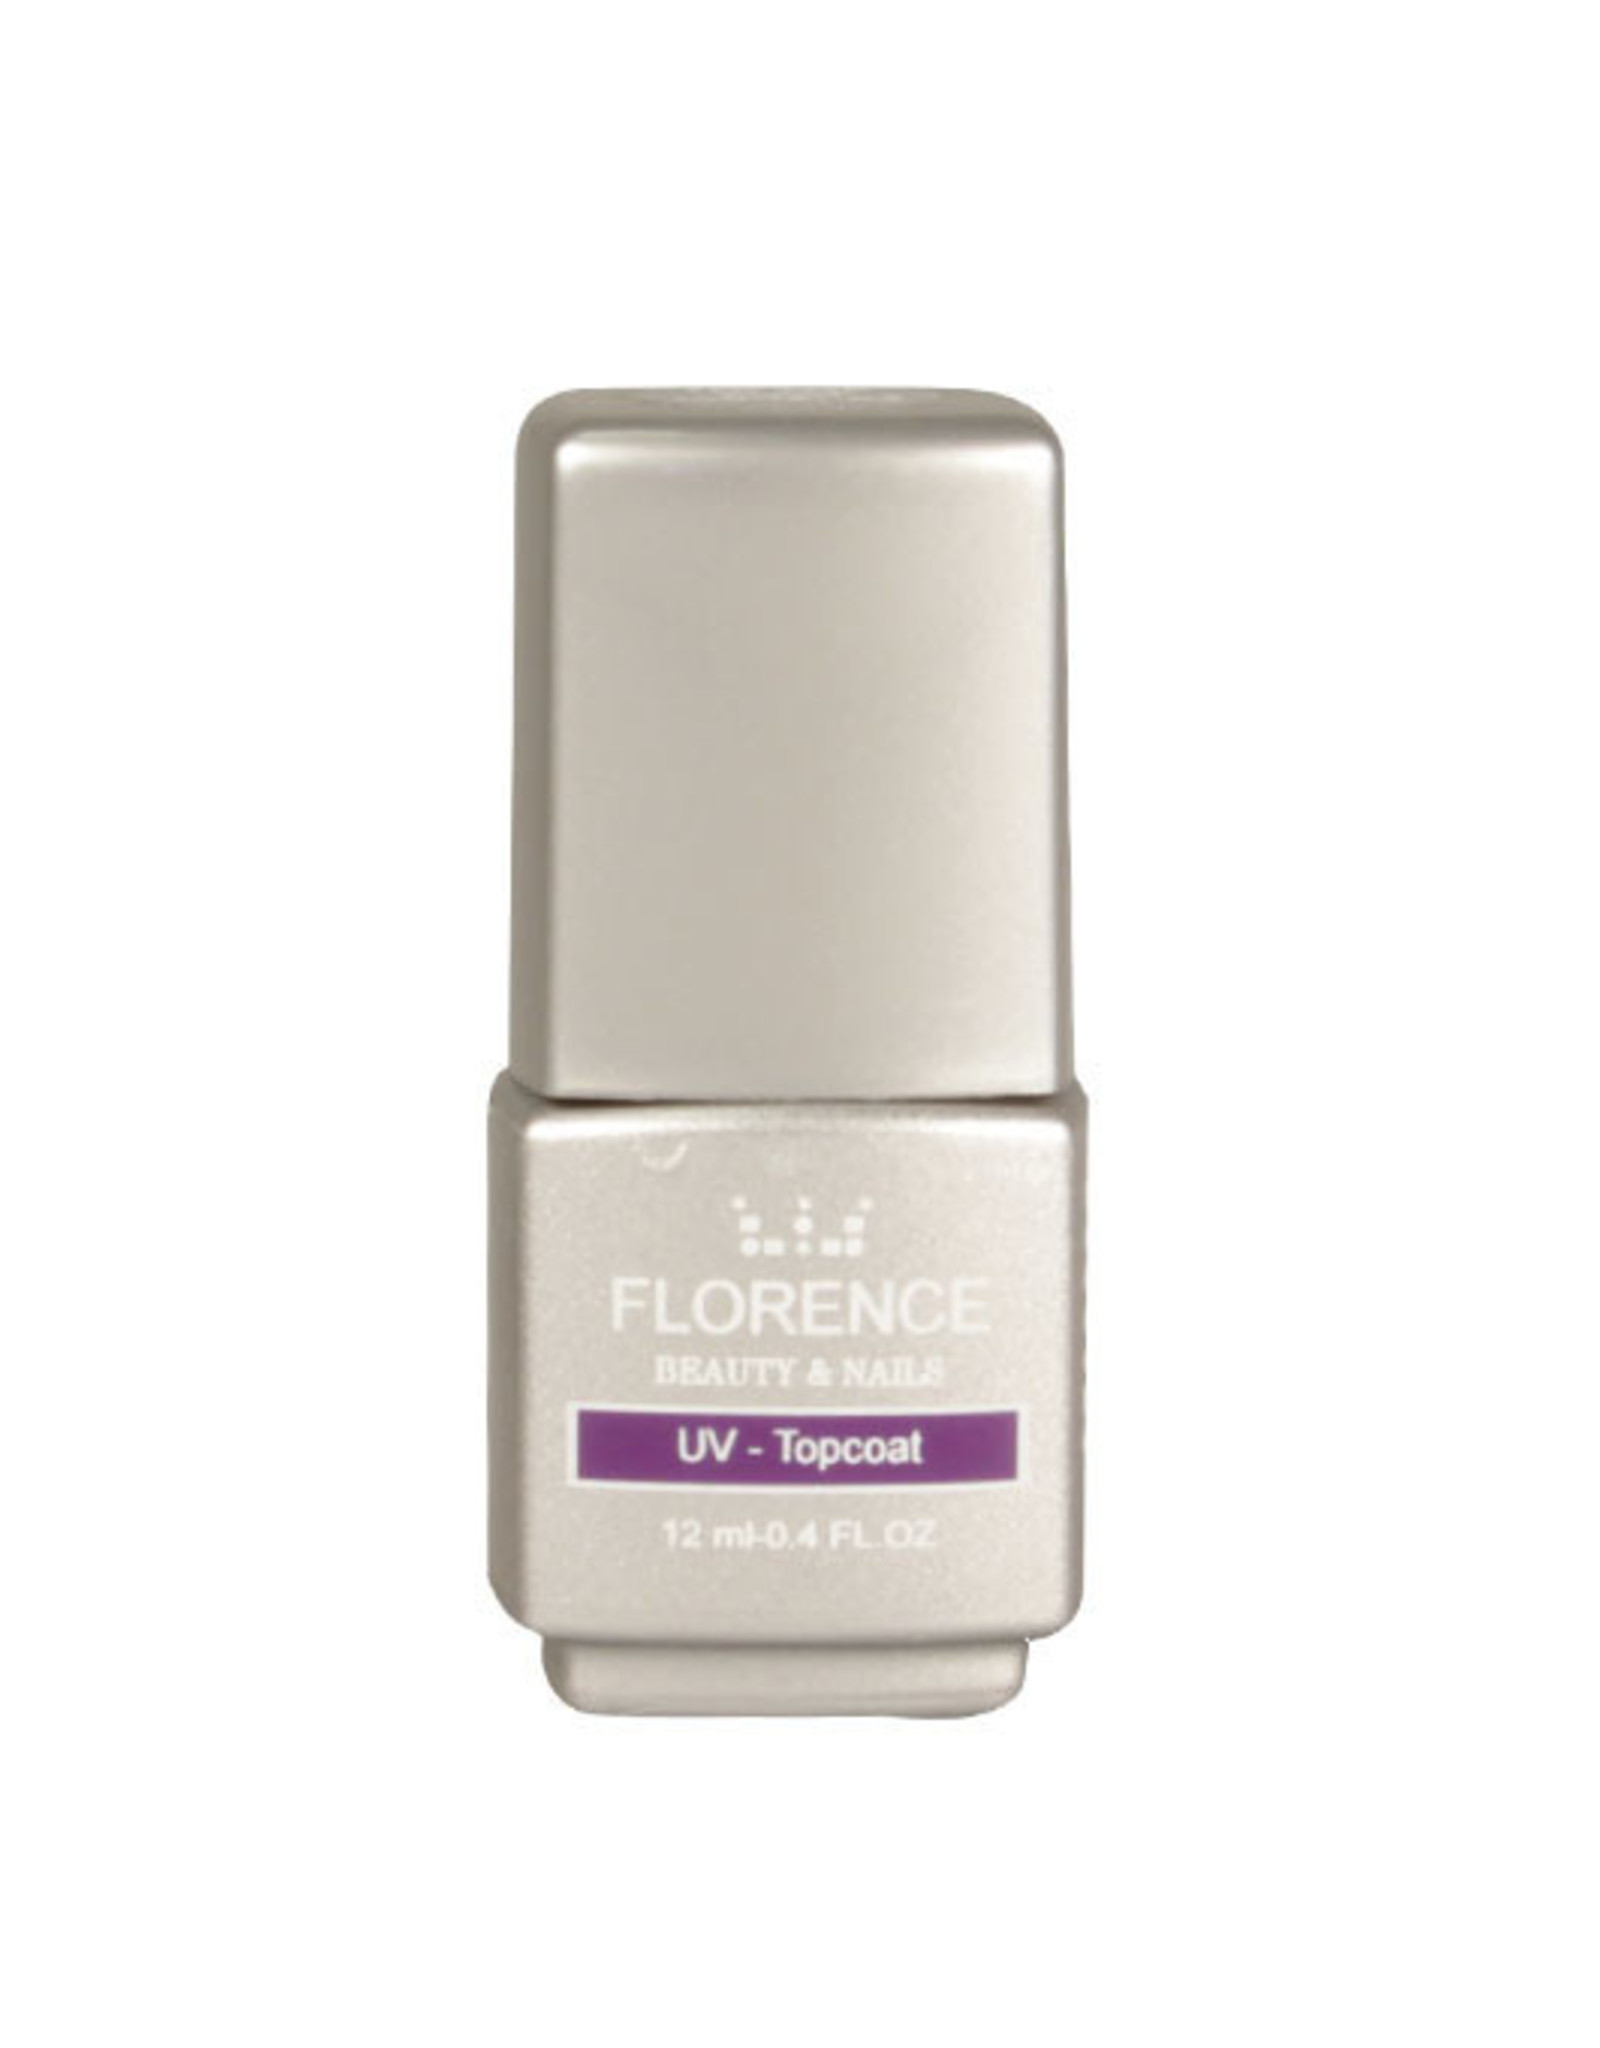 Florence Nails UV Top Coat